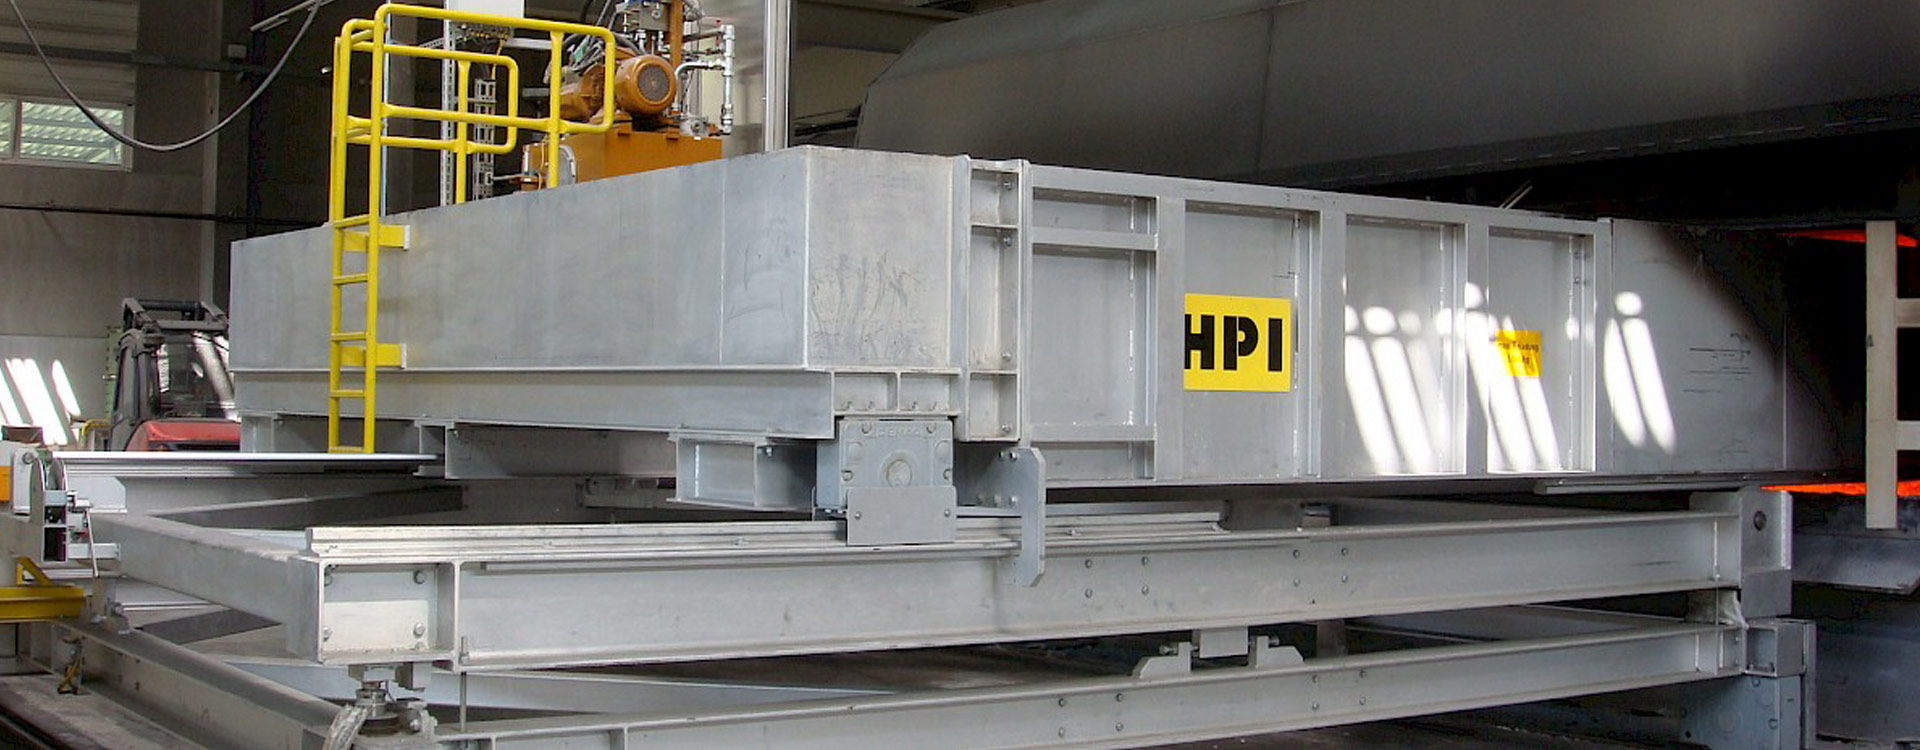 HPI - EBNER Group